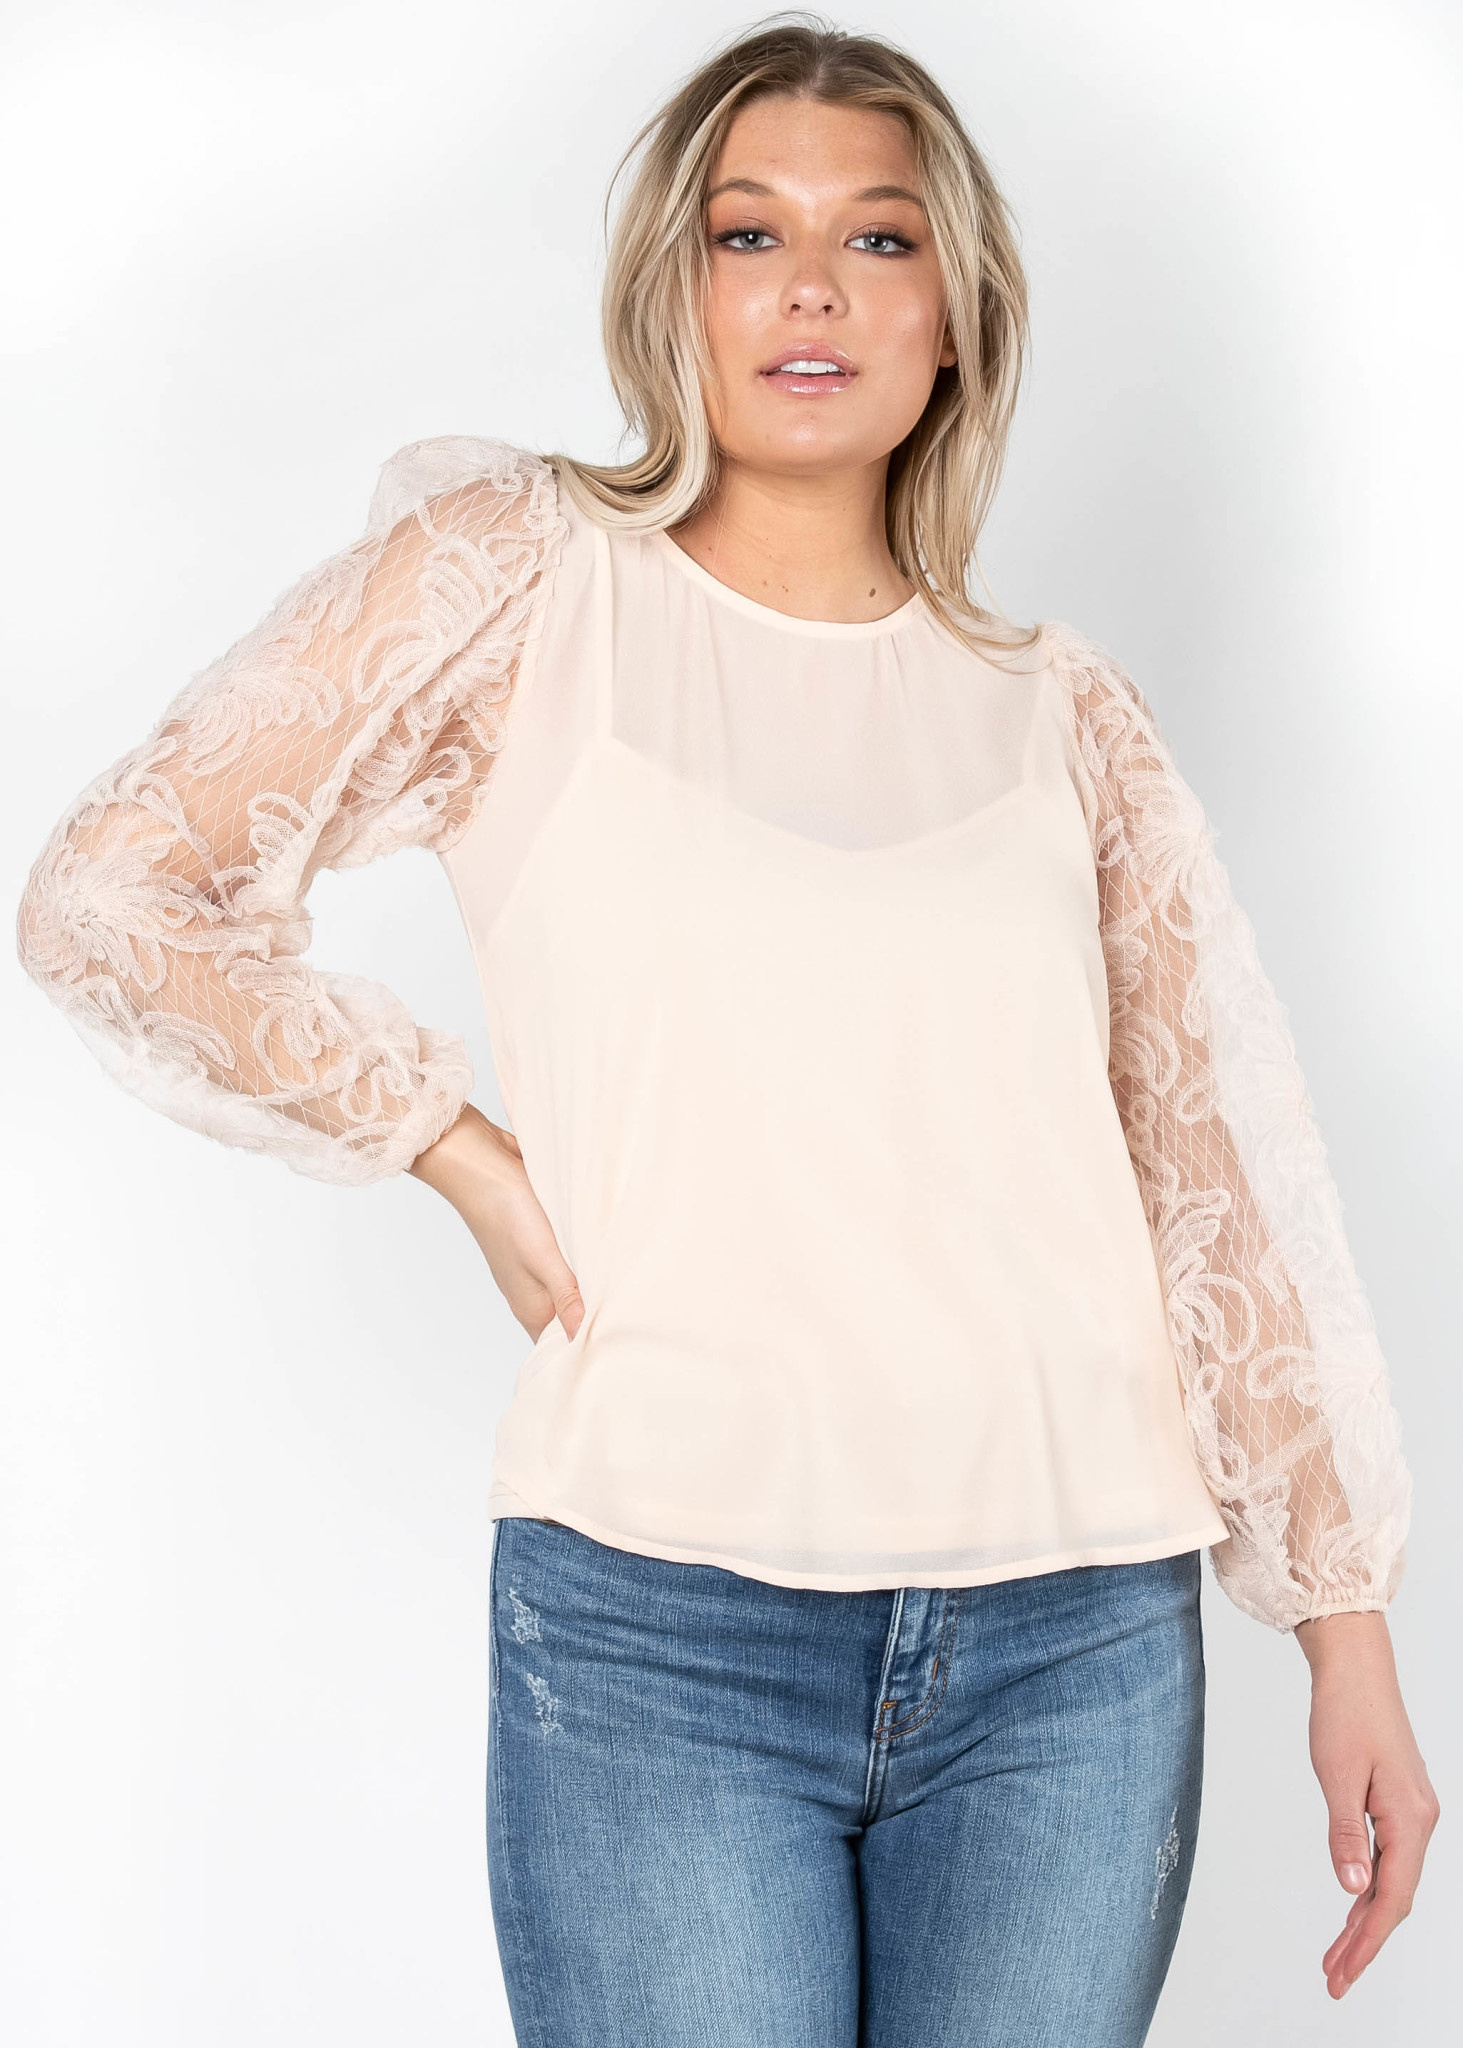 EFFORTLESS GRACE BLUSH BLOUSE